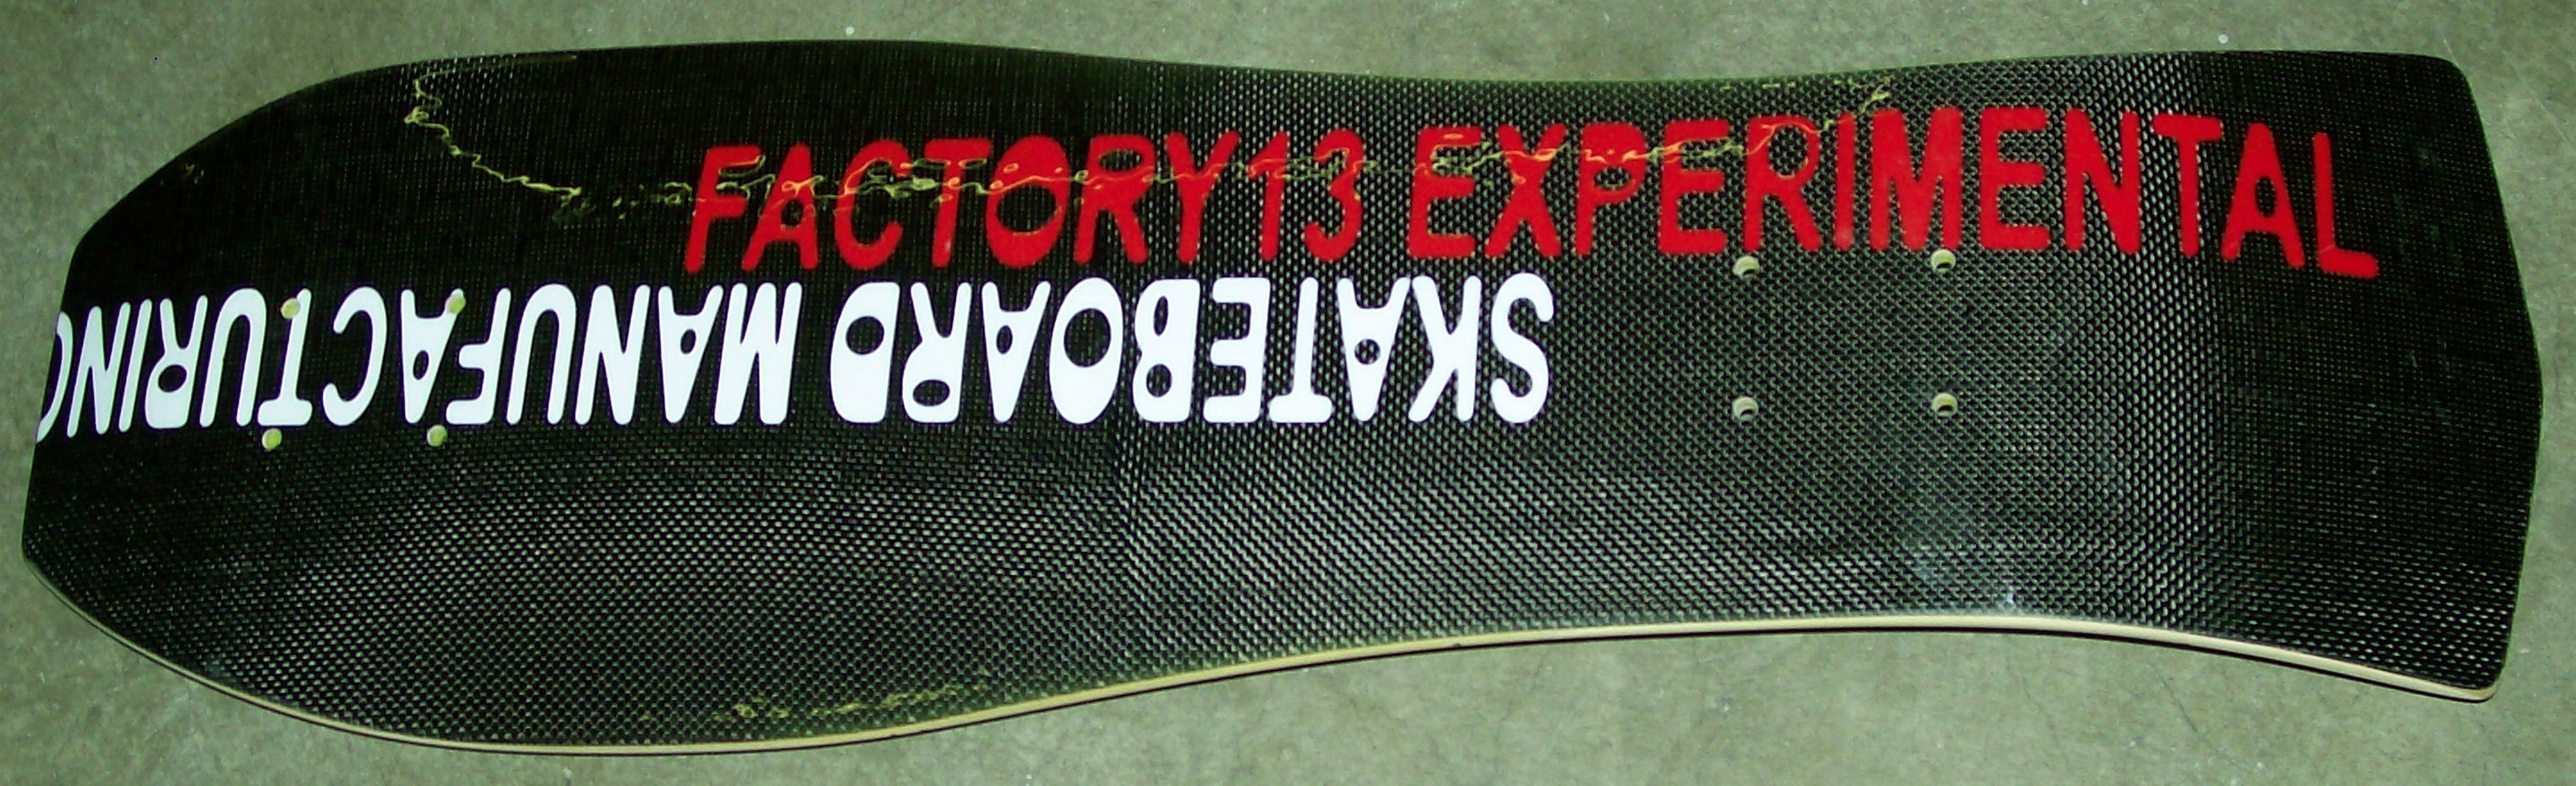 factory13_custom1bottom